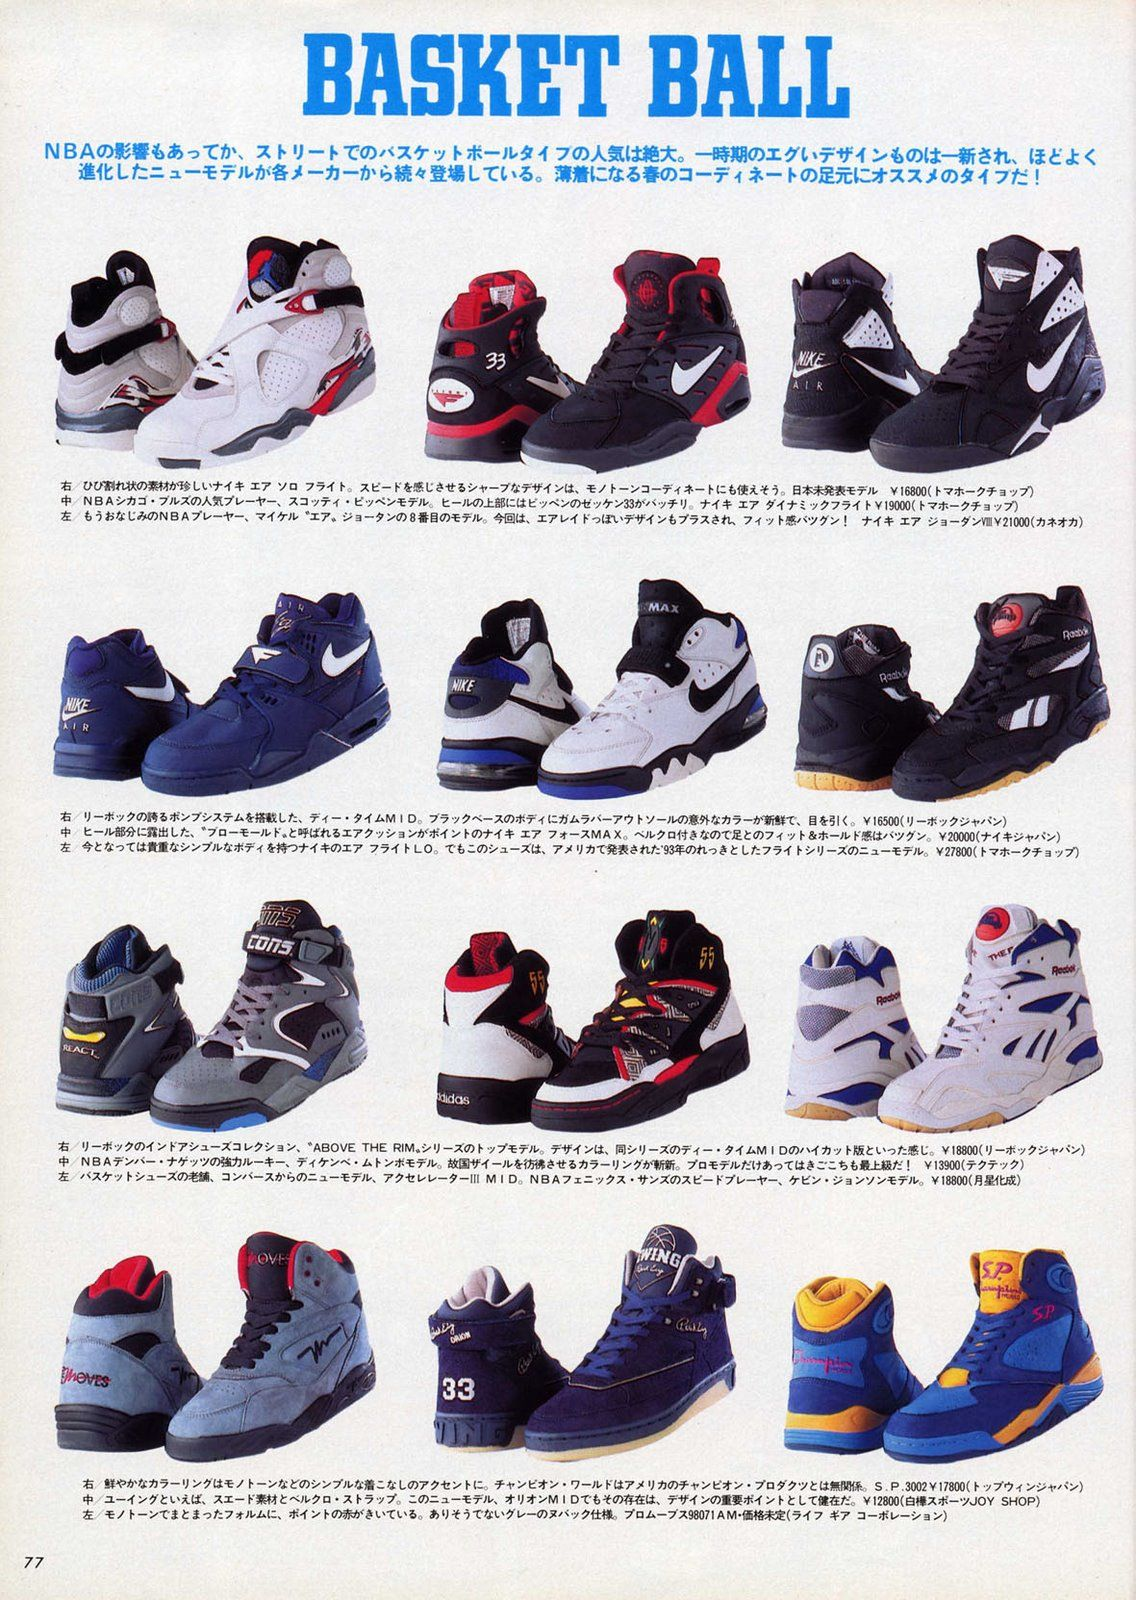 Vintage Nike, Vintage Shoes, Shoe Ads, Nike Stuff, Sneaker Heads,  Basketball Shoes, Kicks, Footwear, Basketball Sneakers